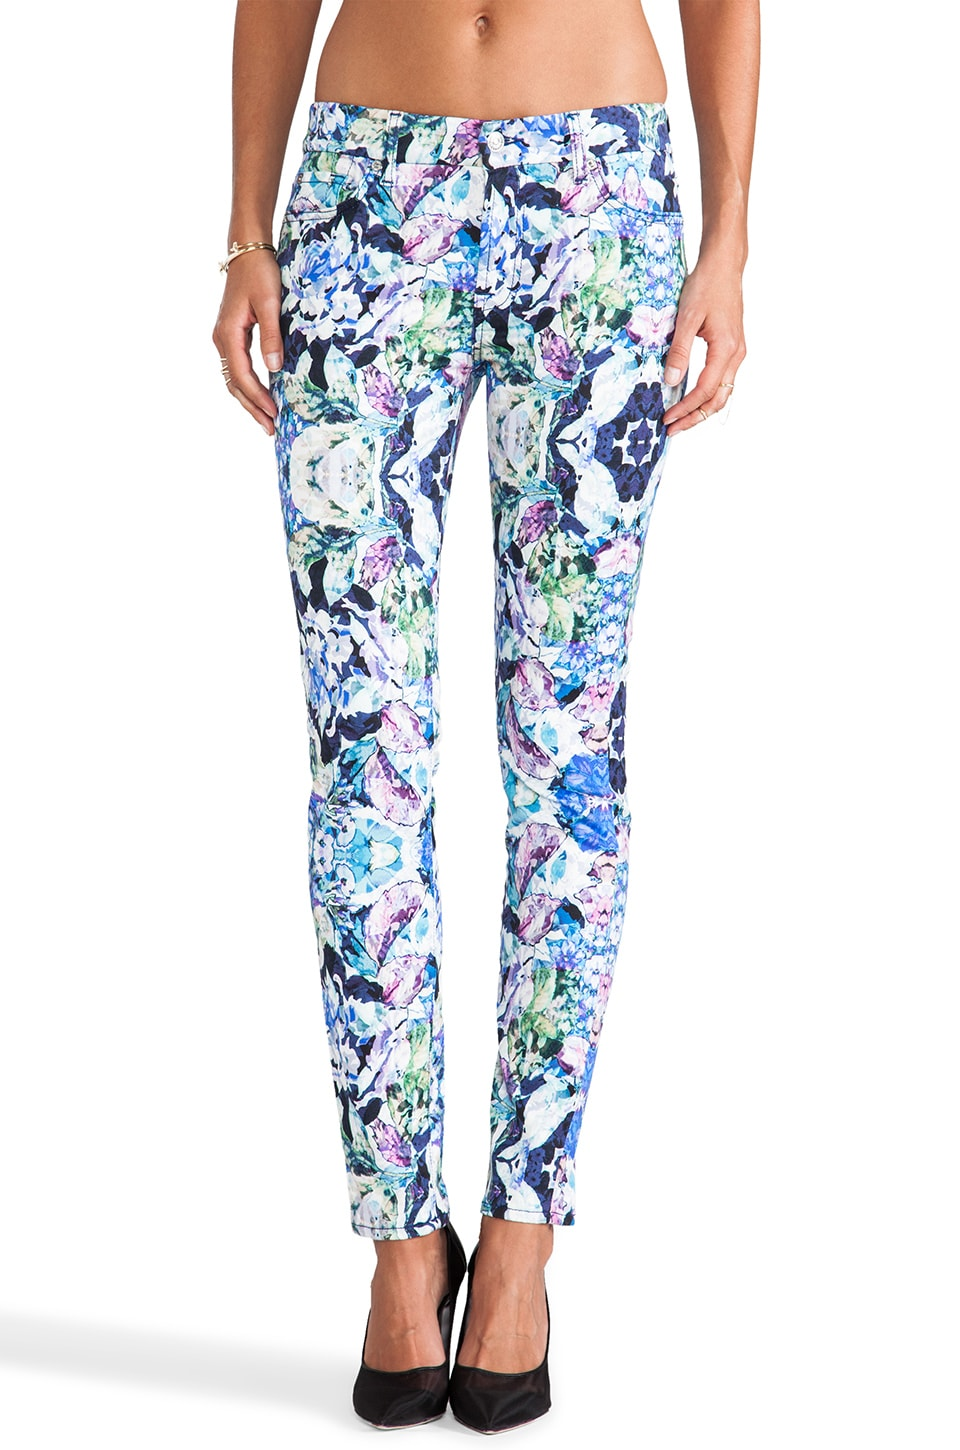 7 For All Mankind Skinny in Kaleidoscope Floral